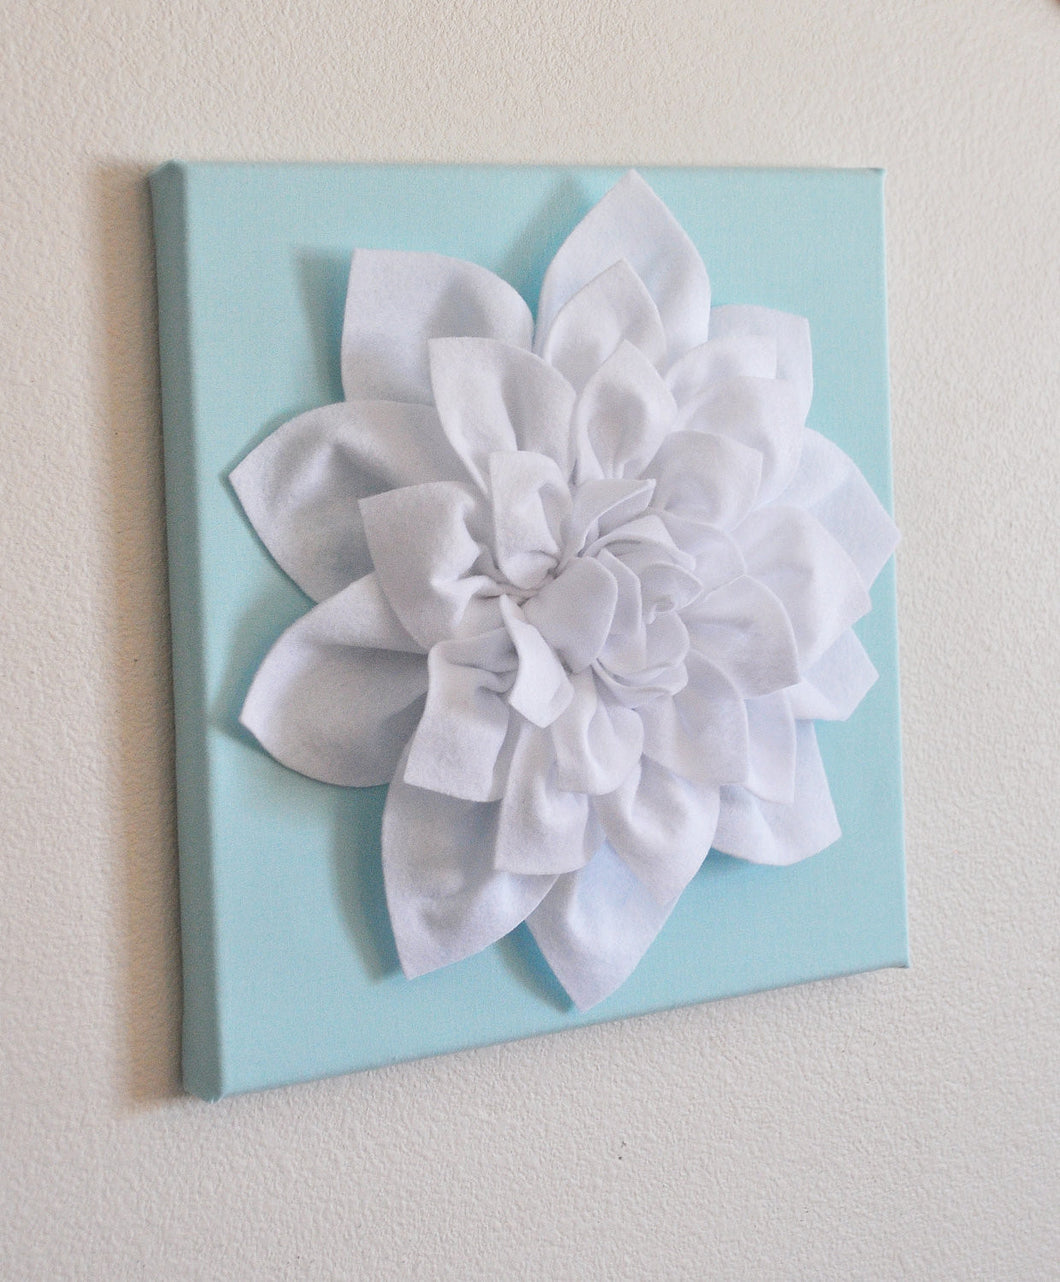 Wall Flower -White Dahlia on Aqua 12 x12